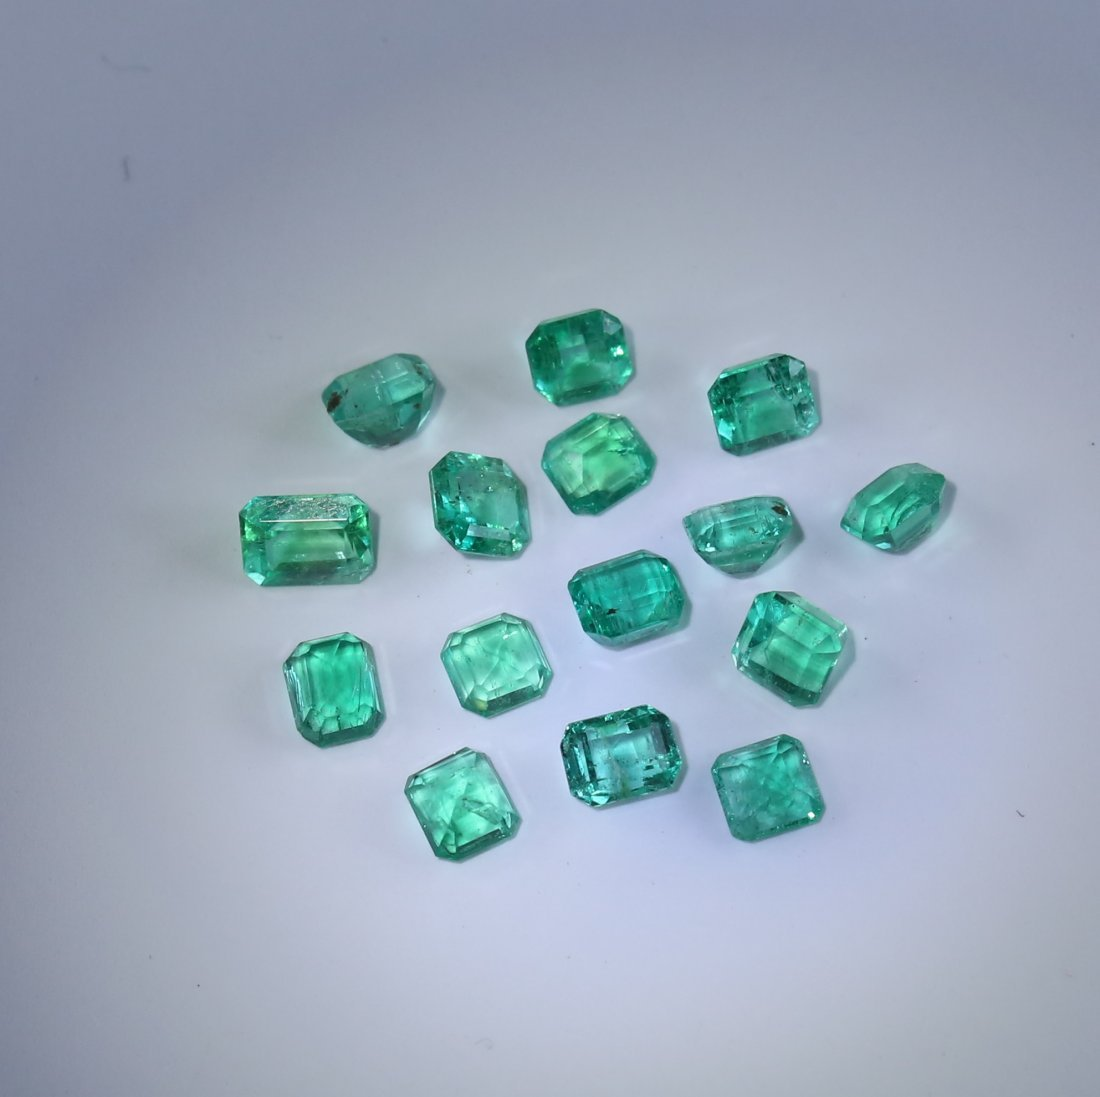 4.16 ct. Emerald Lot - COLOMBIA